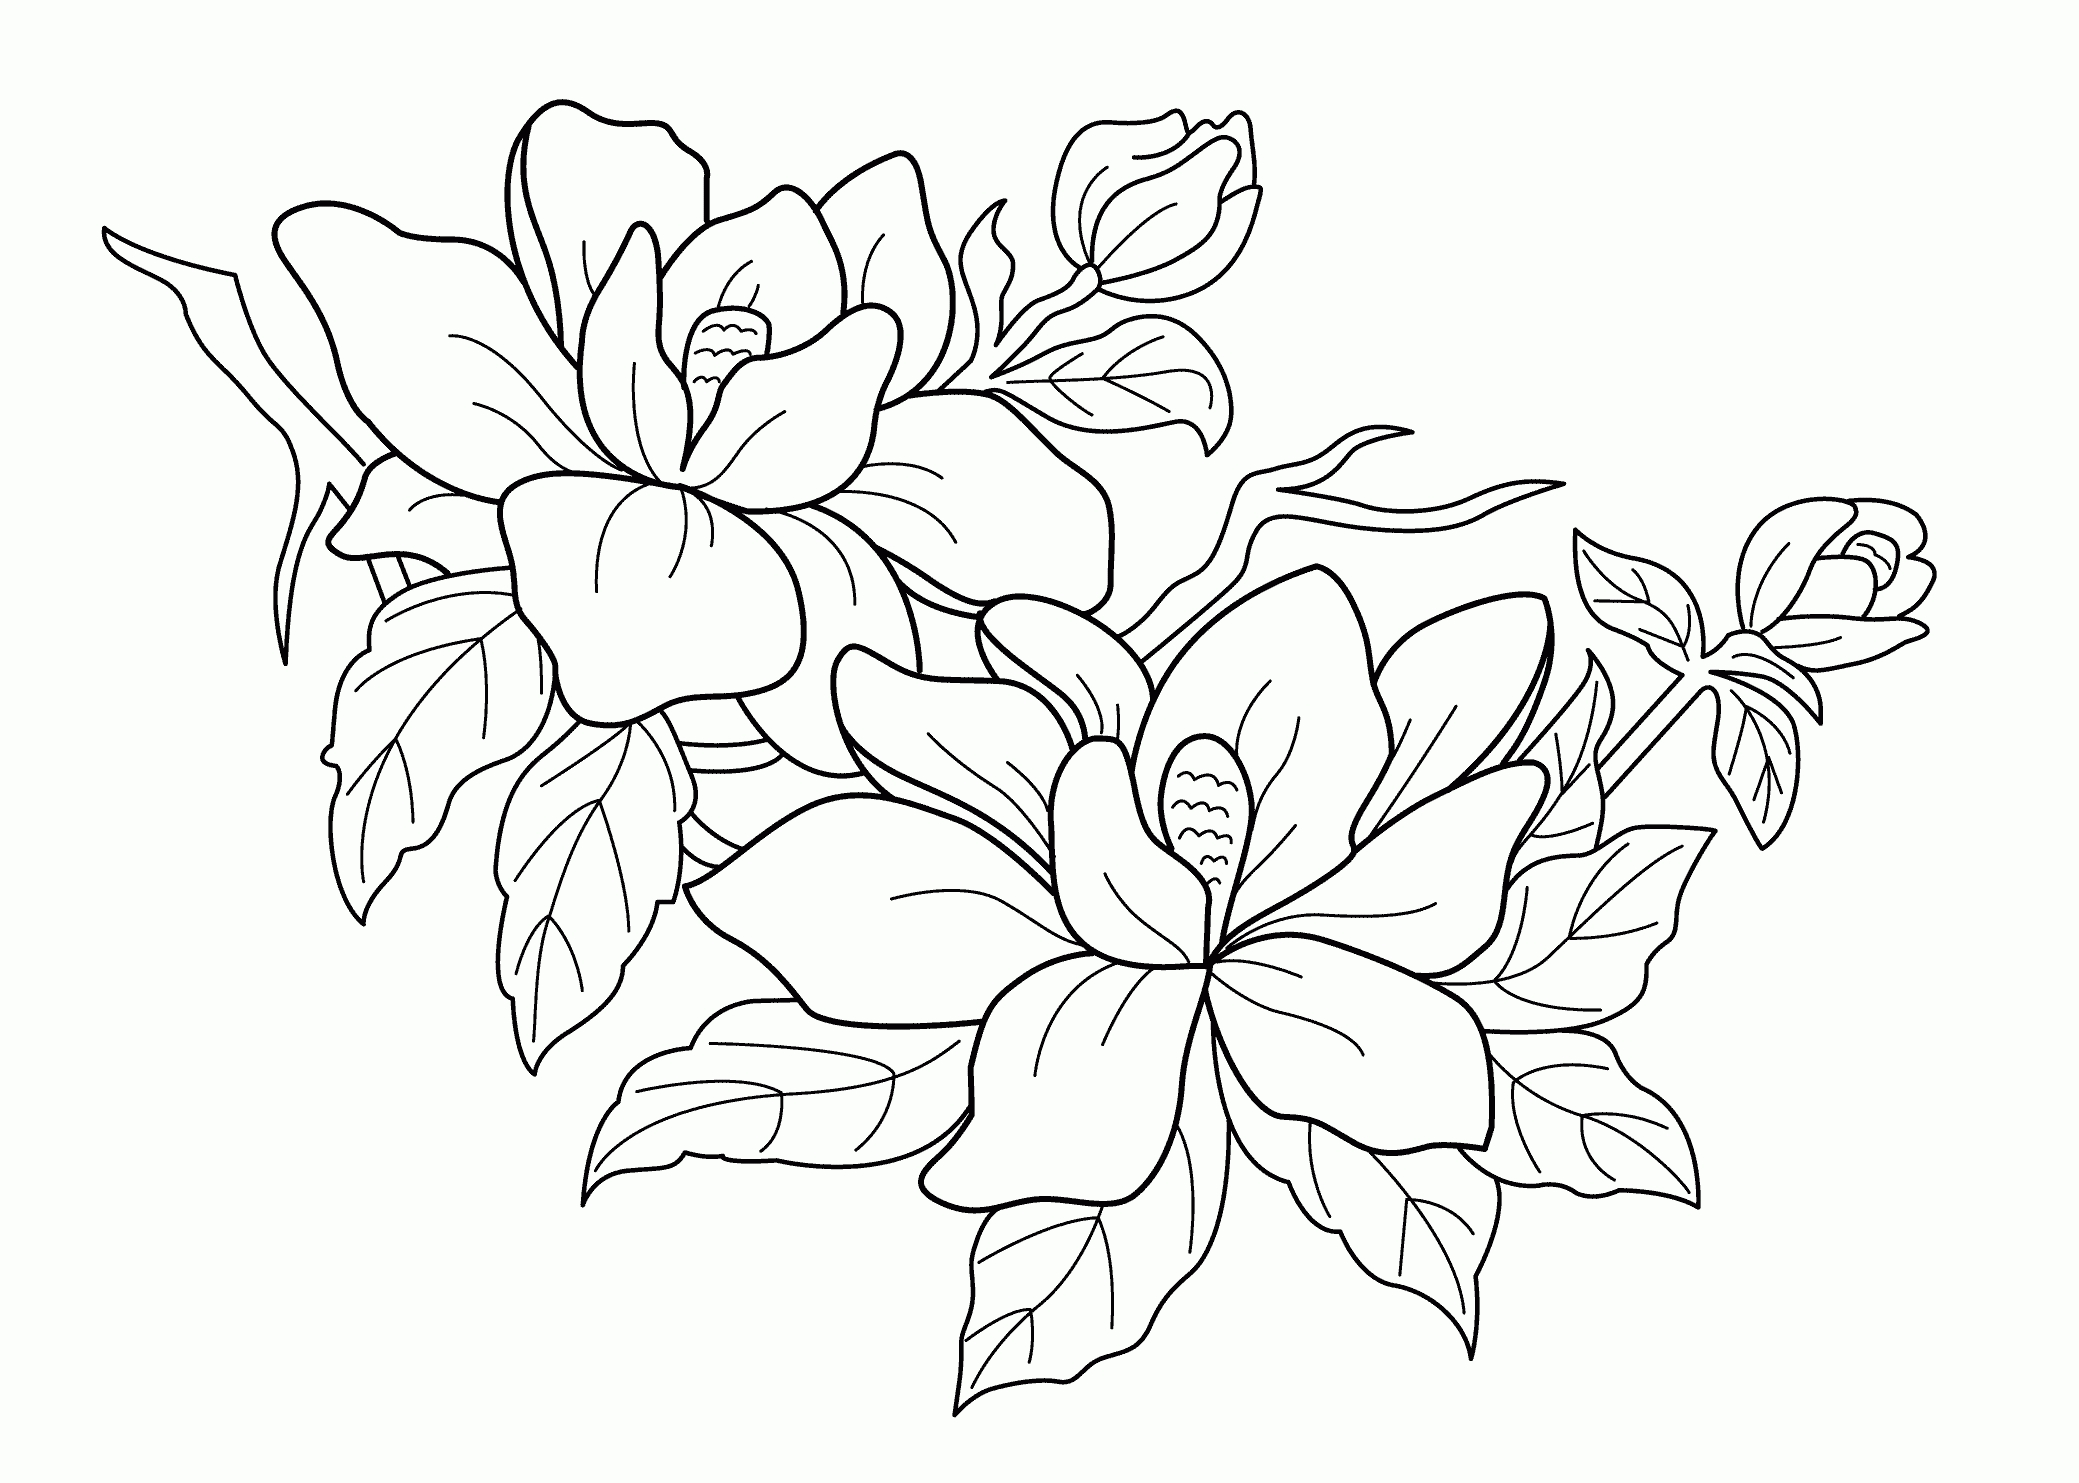 rainforest coloring pages - rain forest trees coloring page